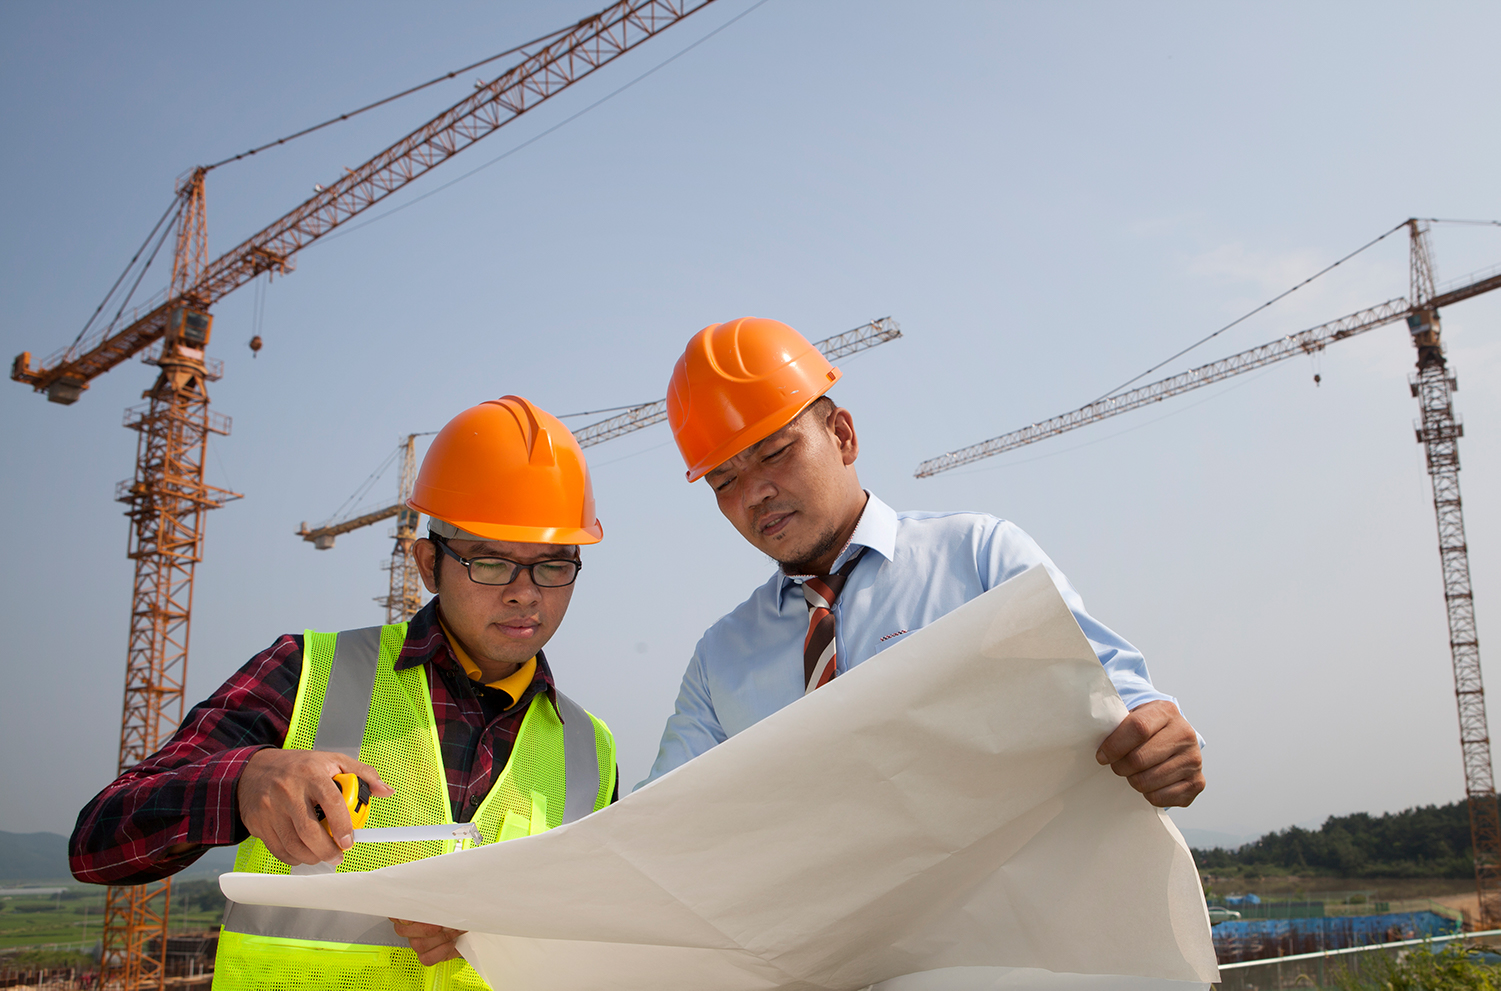 A photo of two men at a construction site